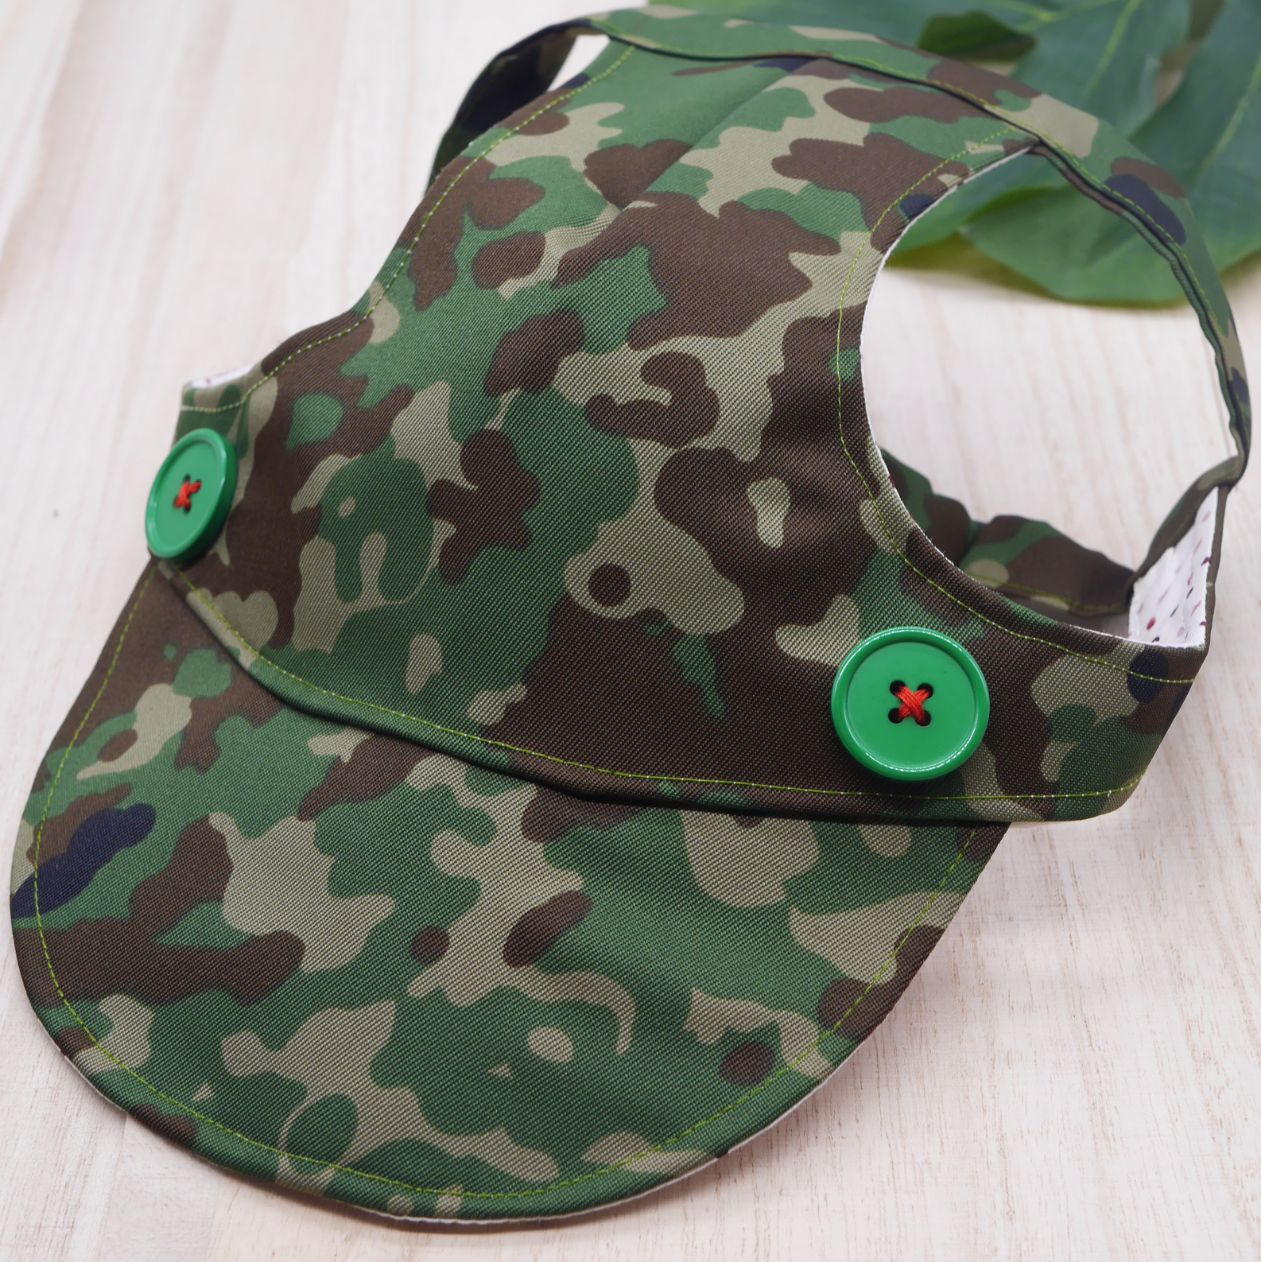 Walking Caps For Him - Green Camo